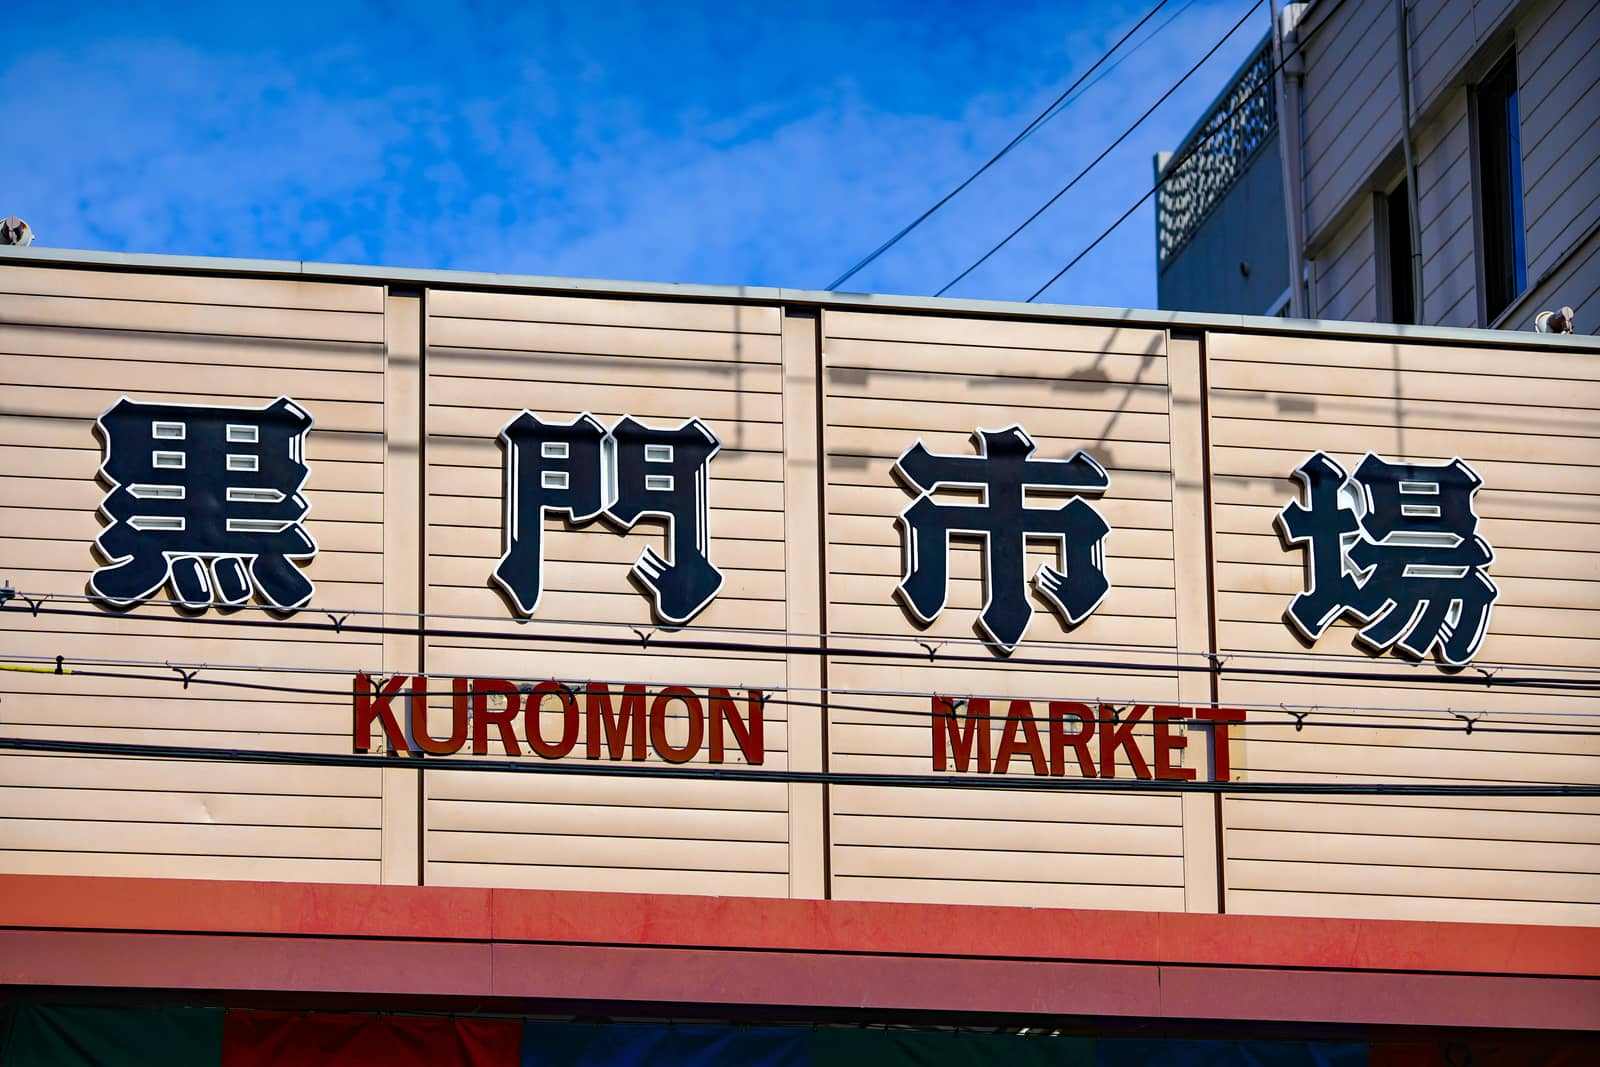 Entrance of Kuromon Market